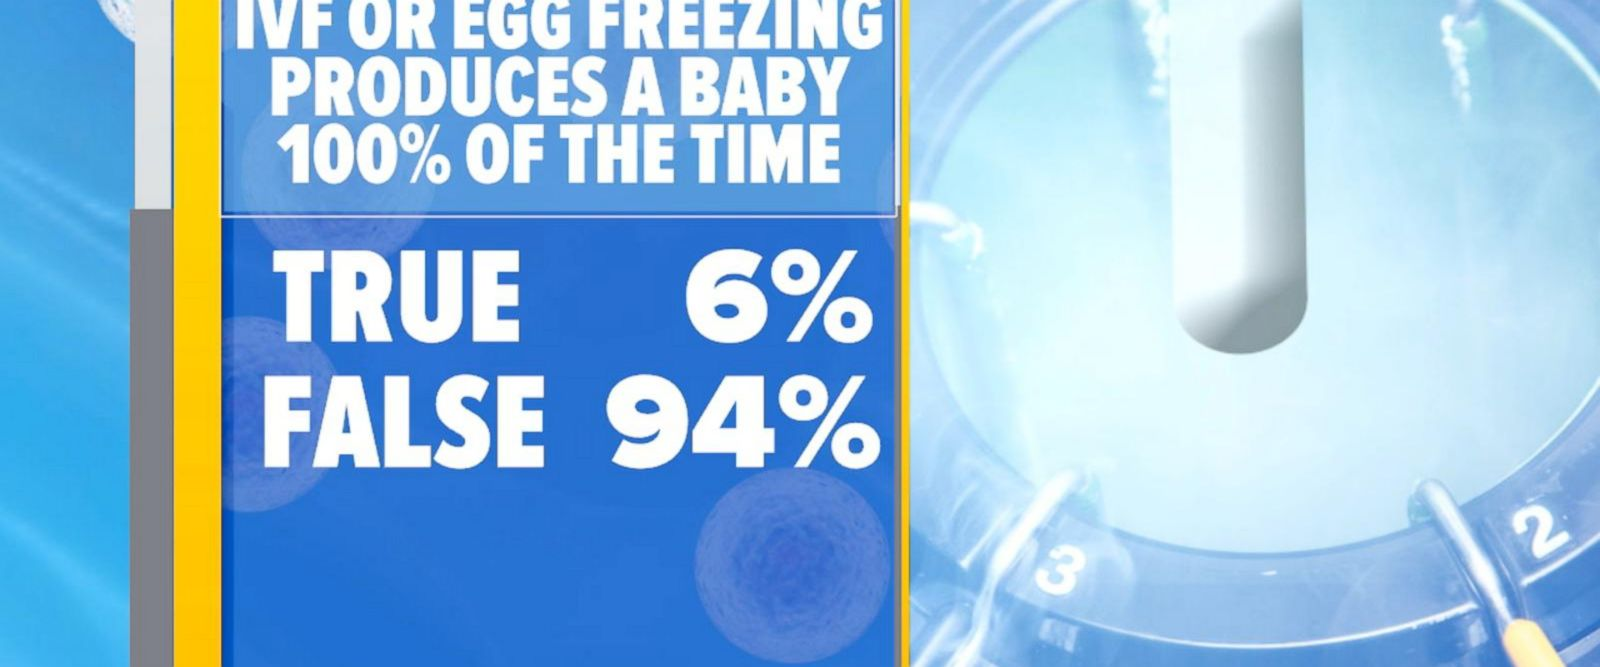 VIDEO: Women should receive more counseling before deciding to freeze their eggs: Study